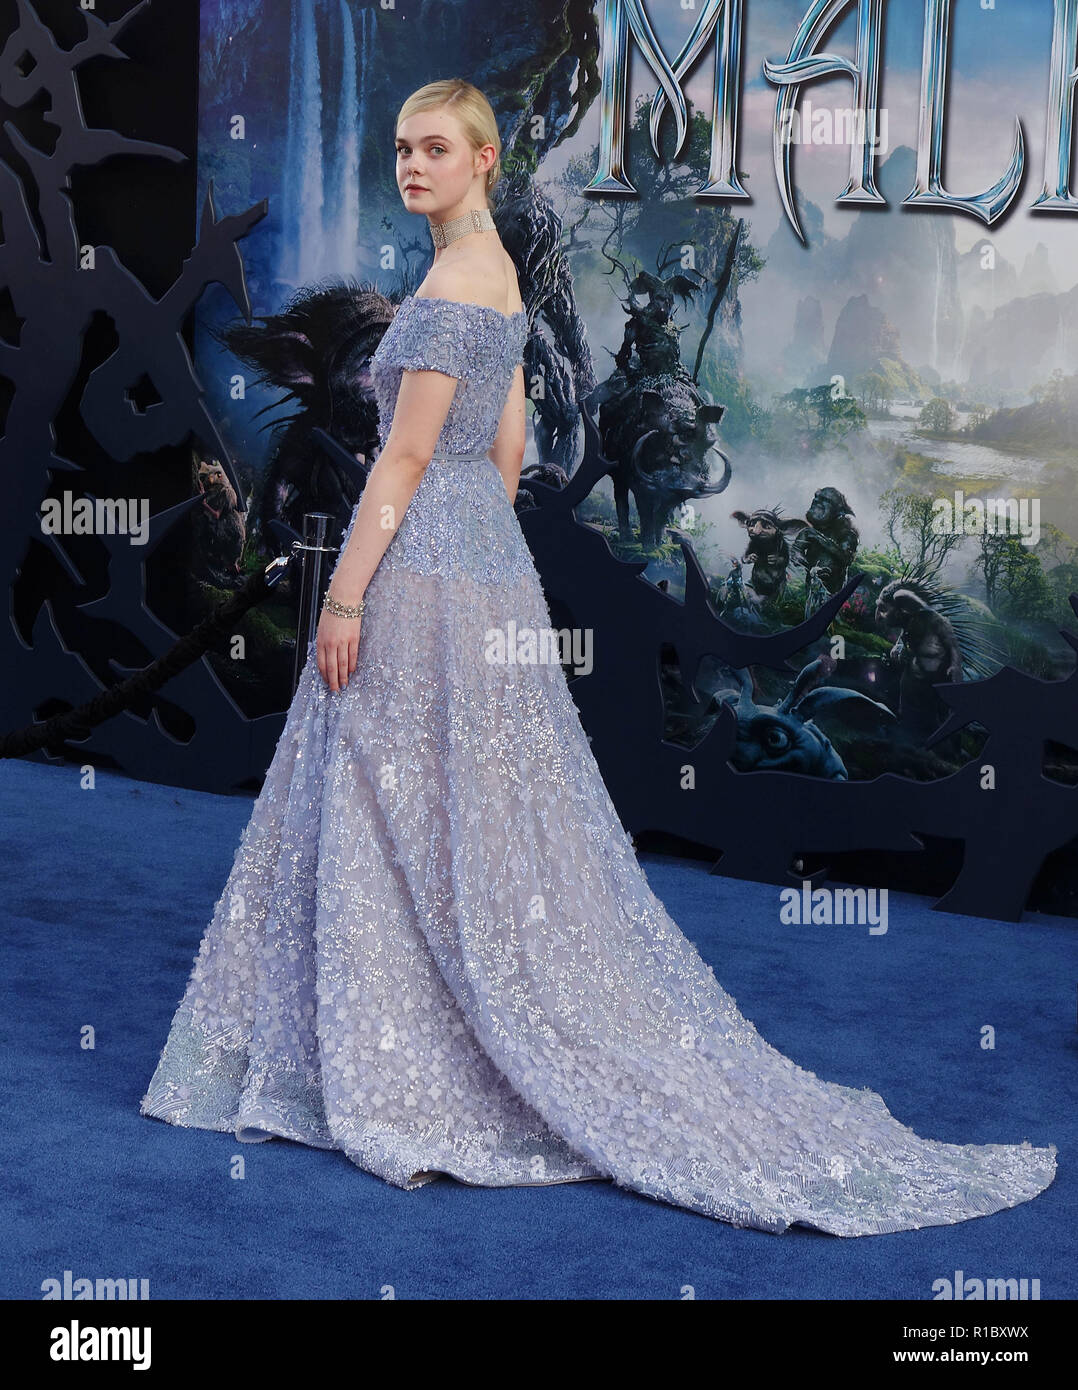 Elle Fanning 178 At The Maleficent Premiere At The El